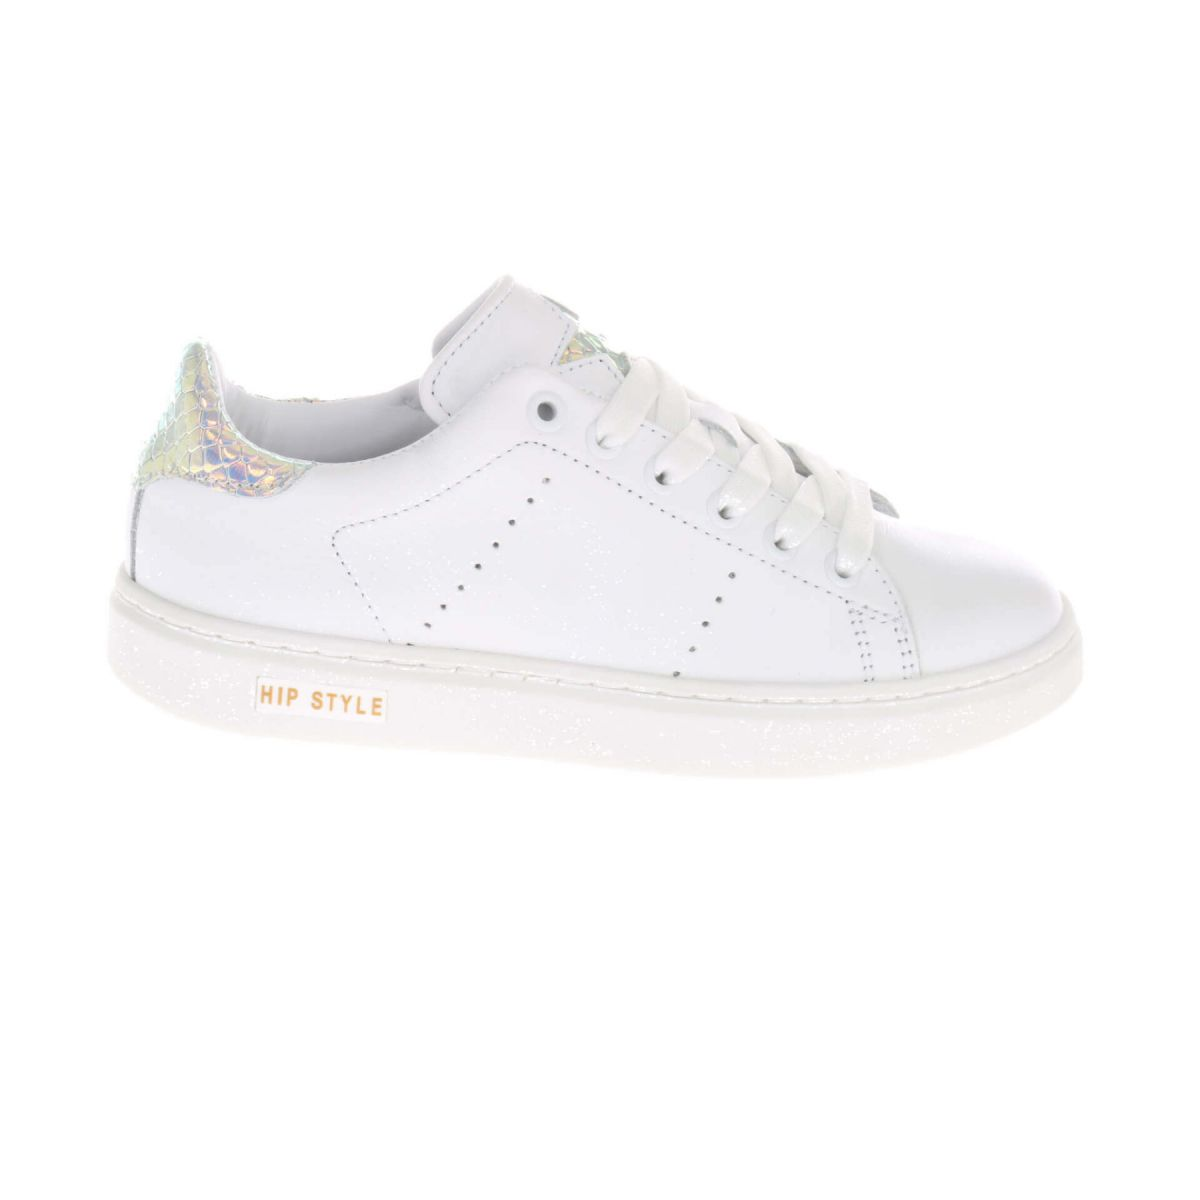 HIP H1253 Sneakers Wit Multicolor